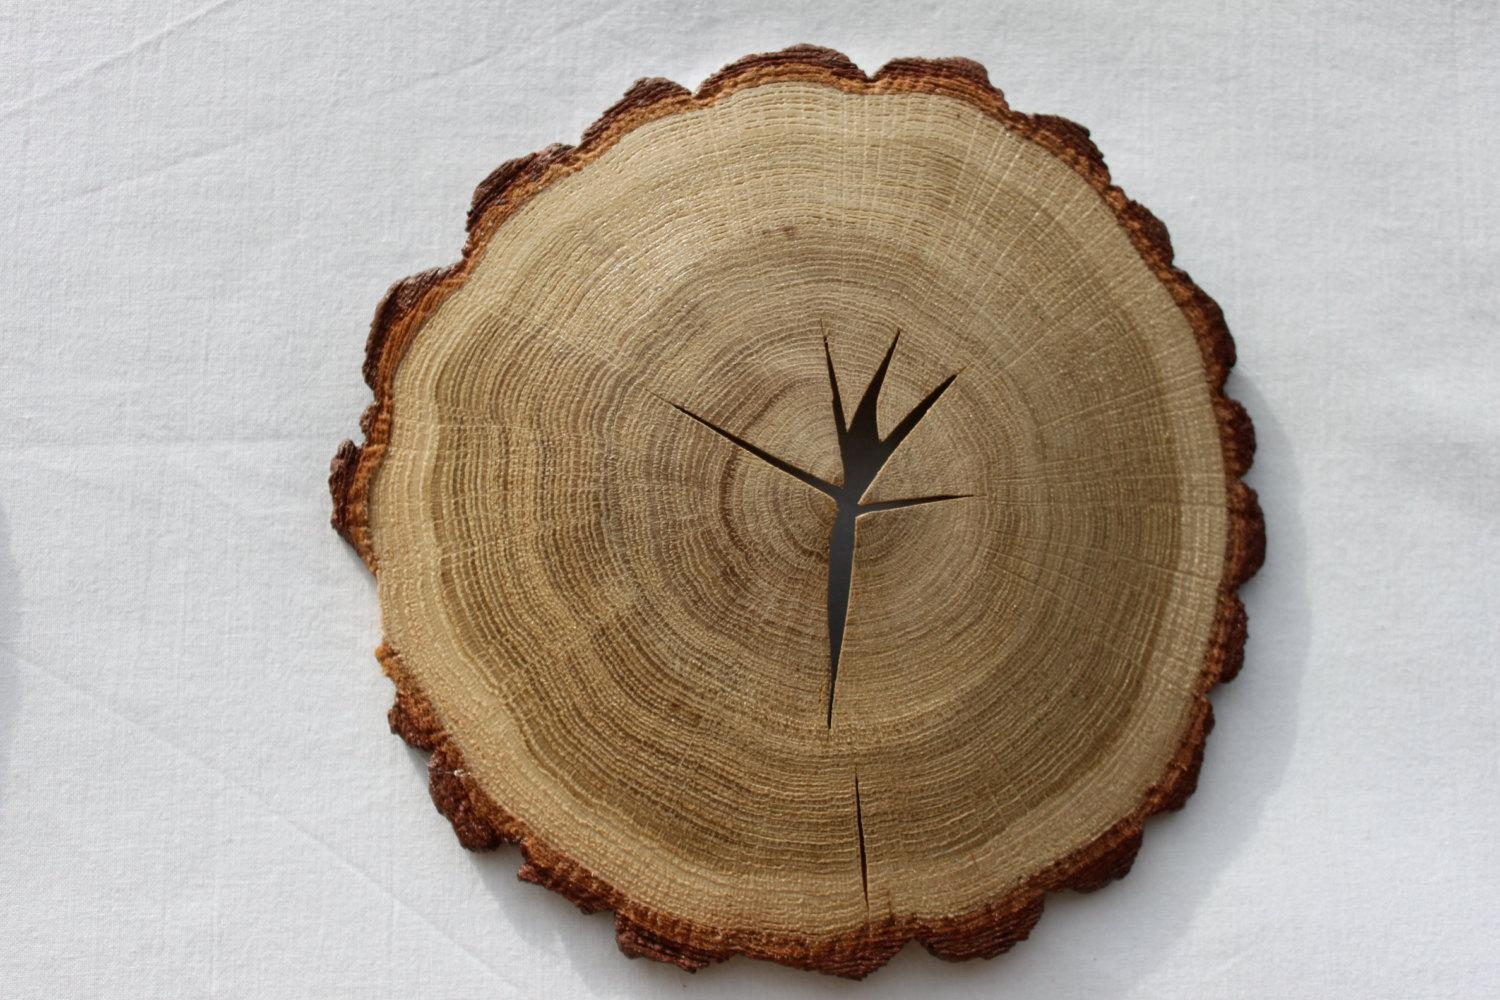 Wood Slice Art Nature Made / Wood Slice Wall Rustic Decor Pertaining To Natural Wood Wall Art (View 11 of 20)